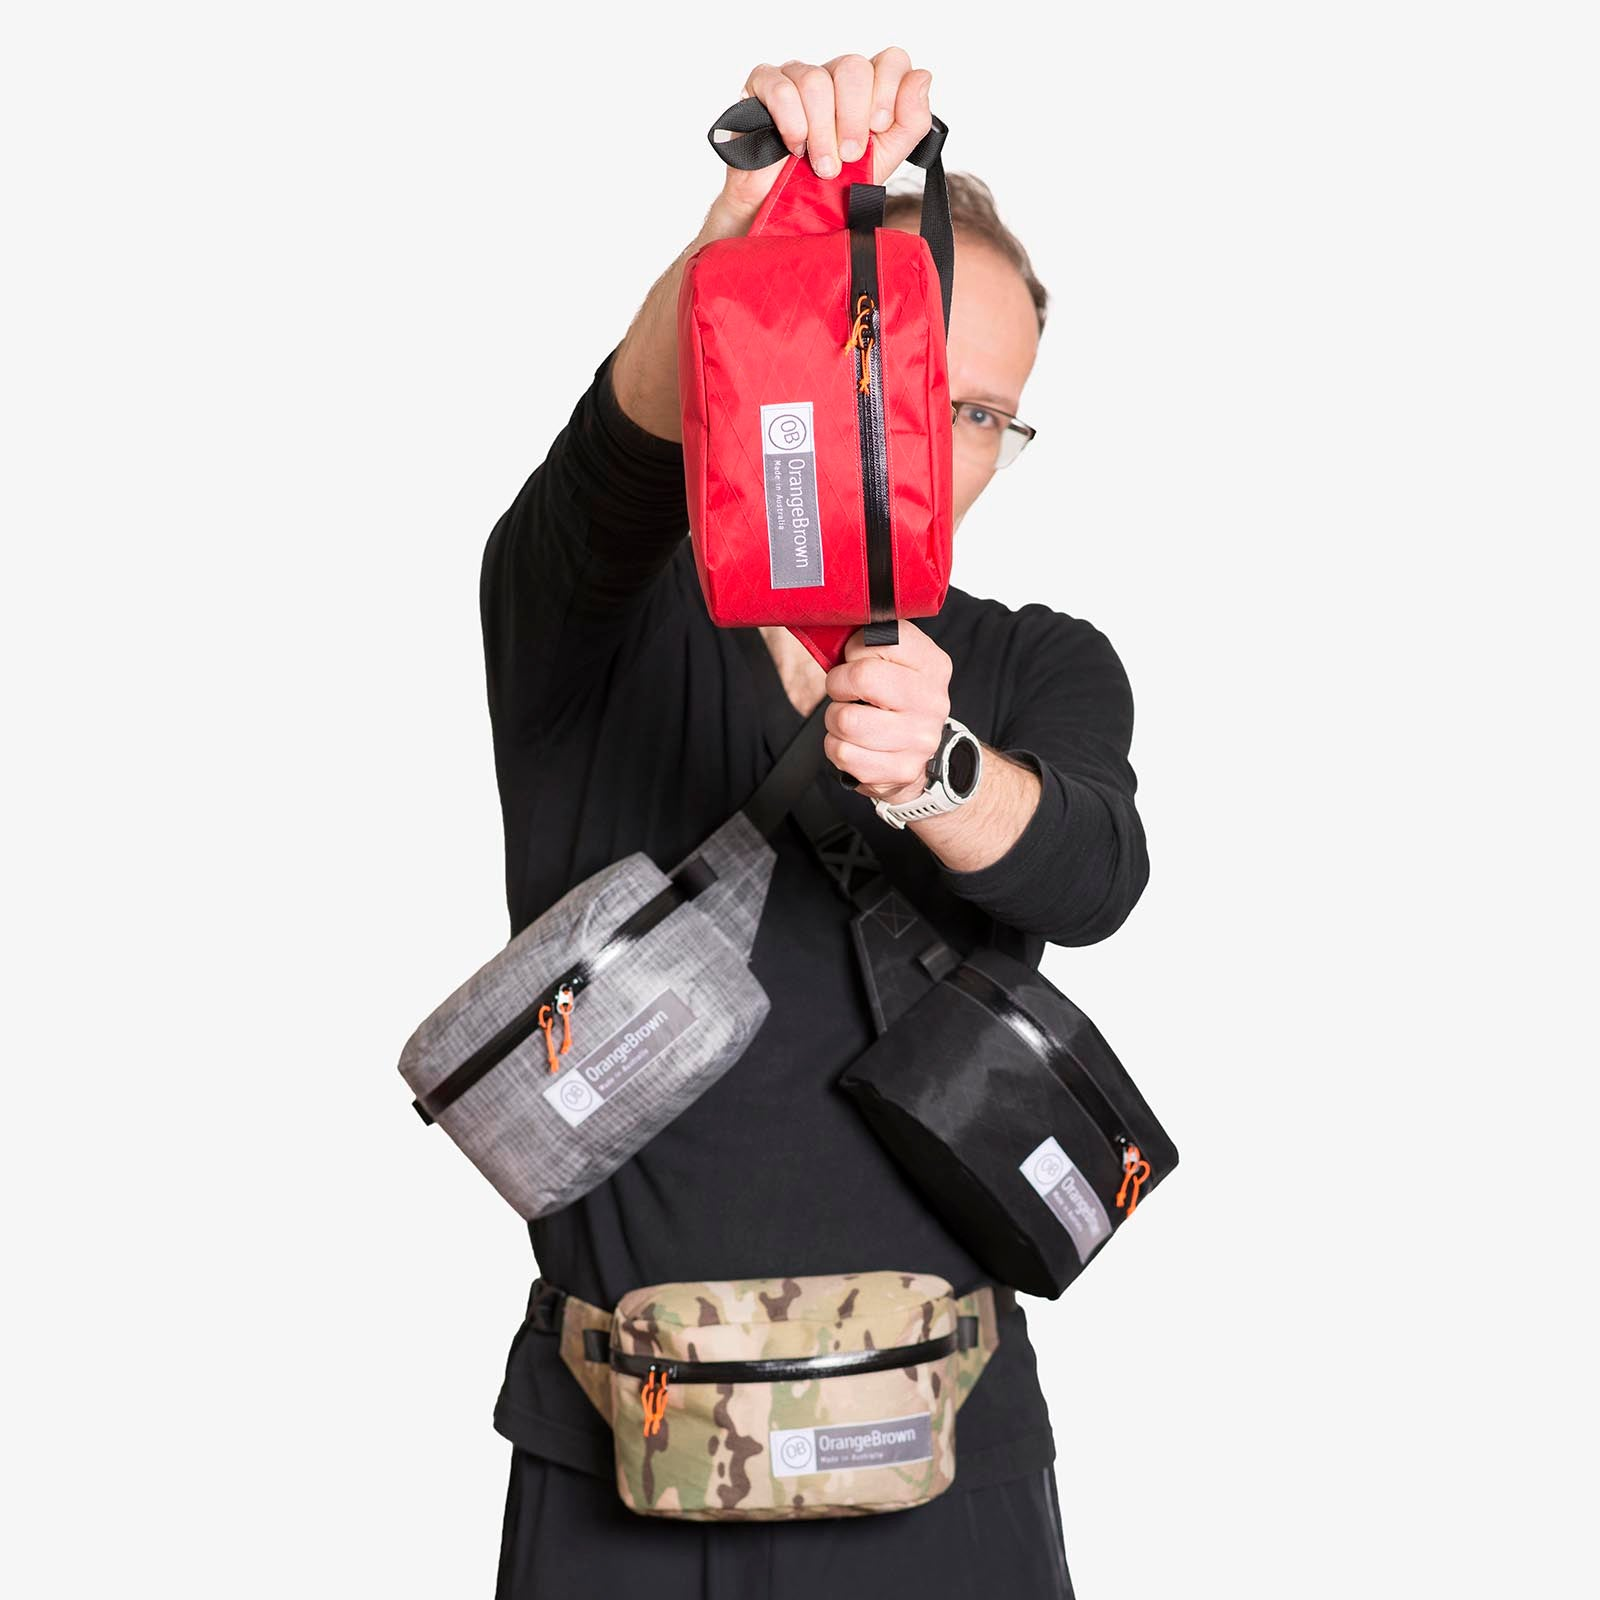 Four fanny packs for hiking and walking are held for presentation by one person.